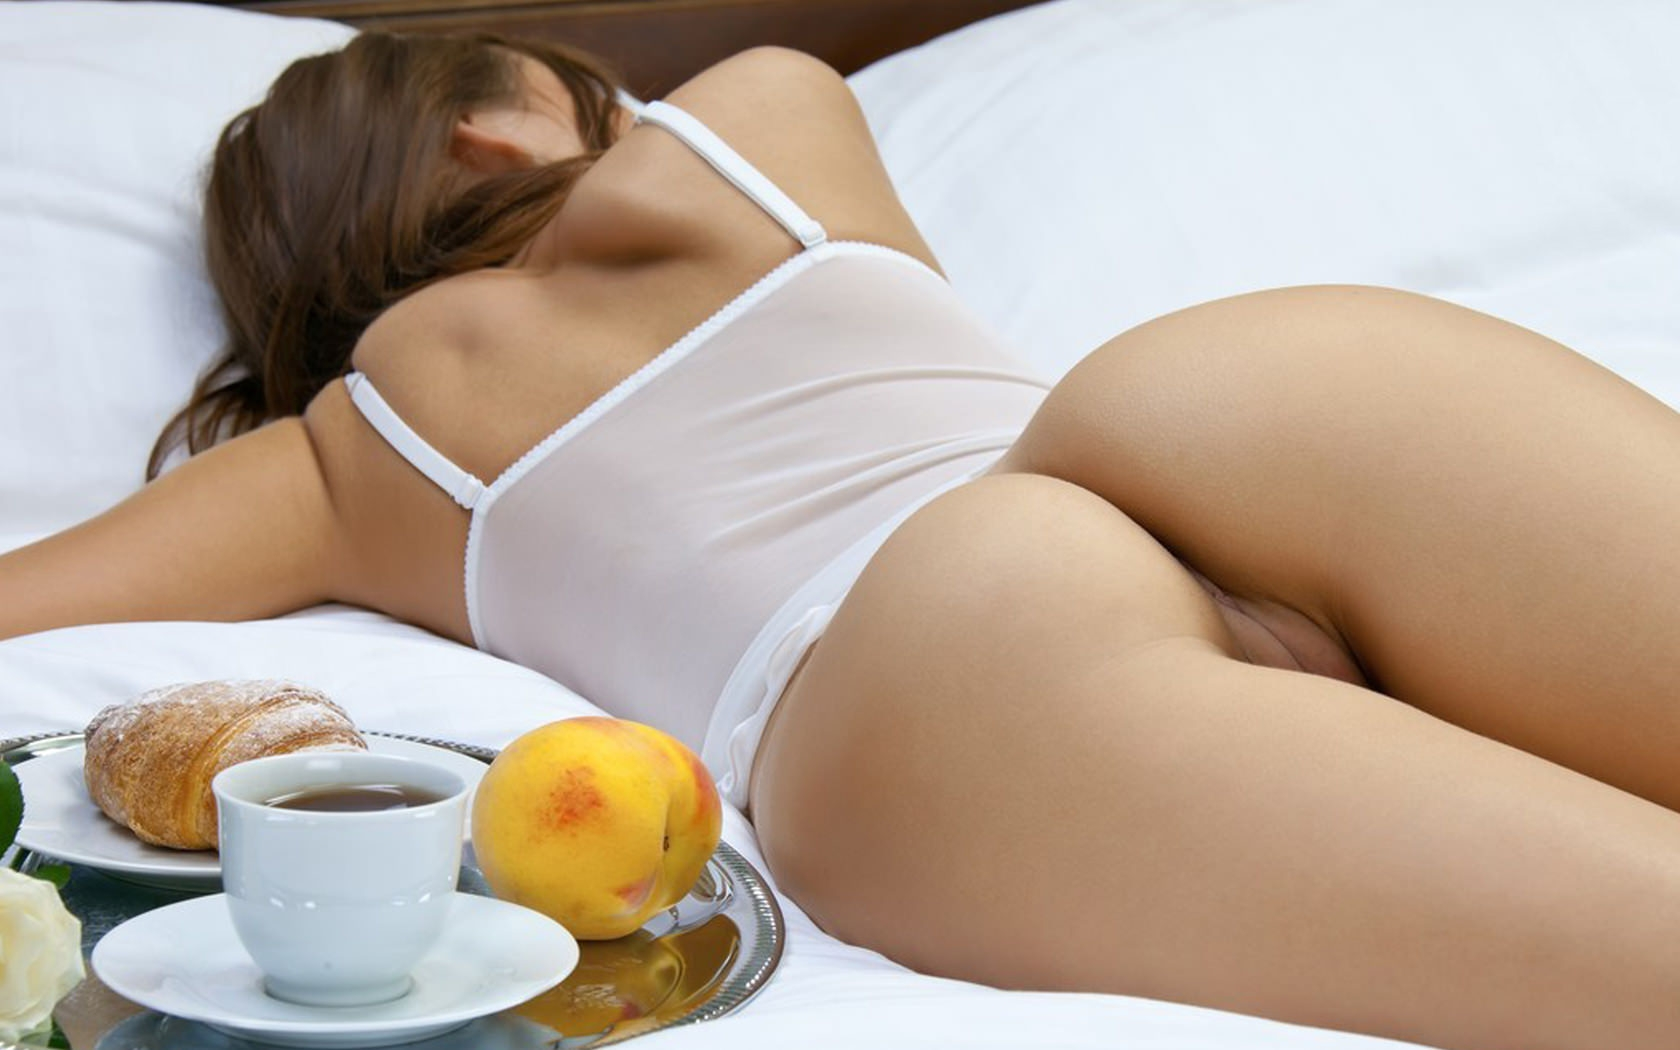 sex-cake-picture-with-nude-girl